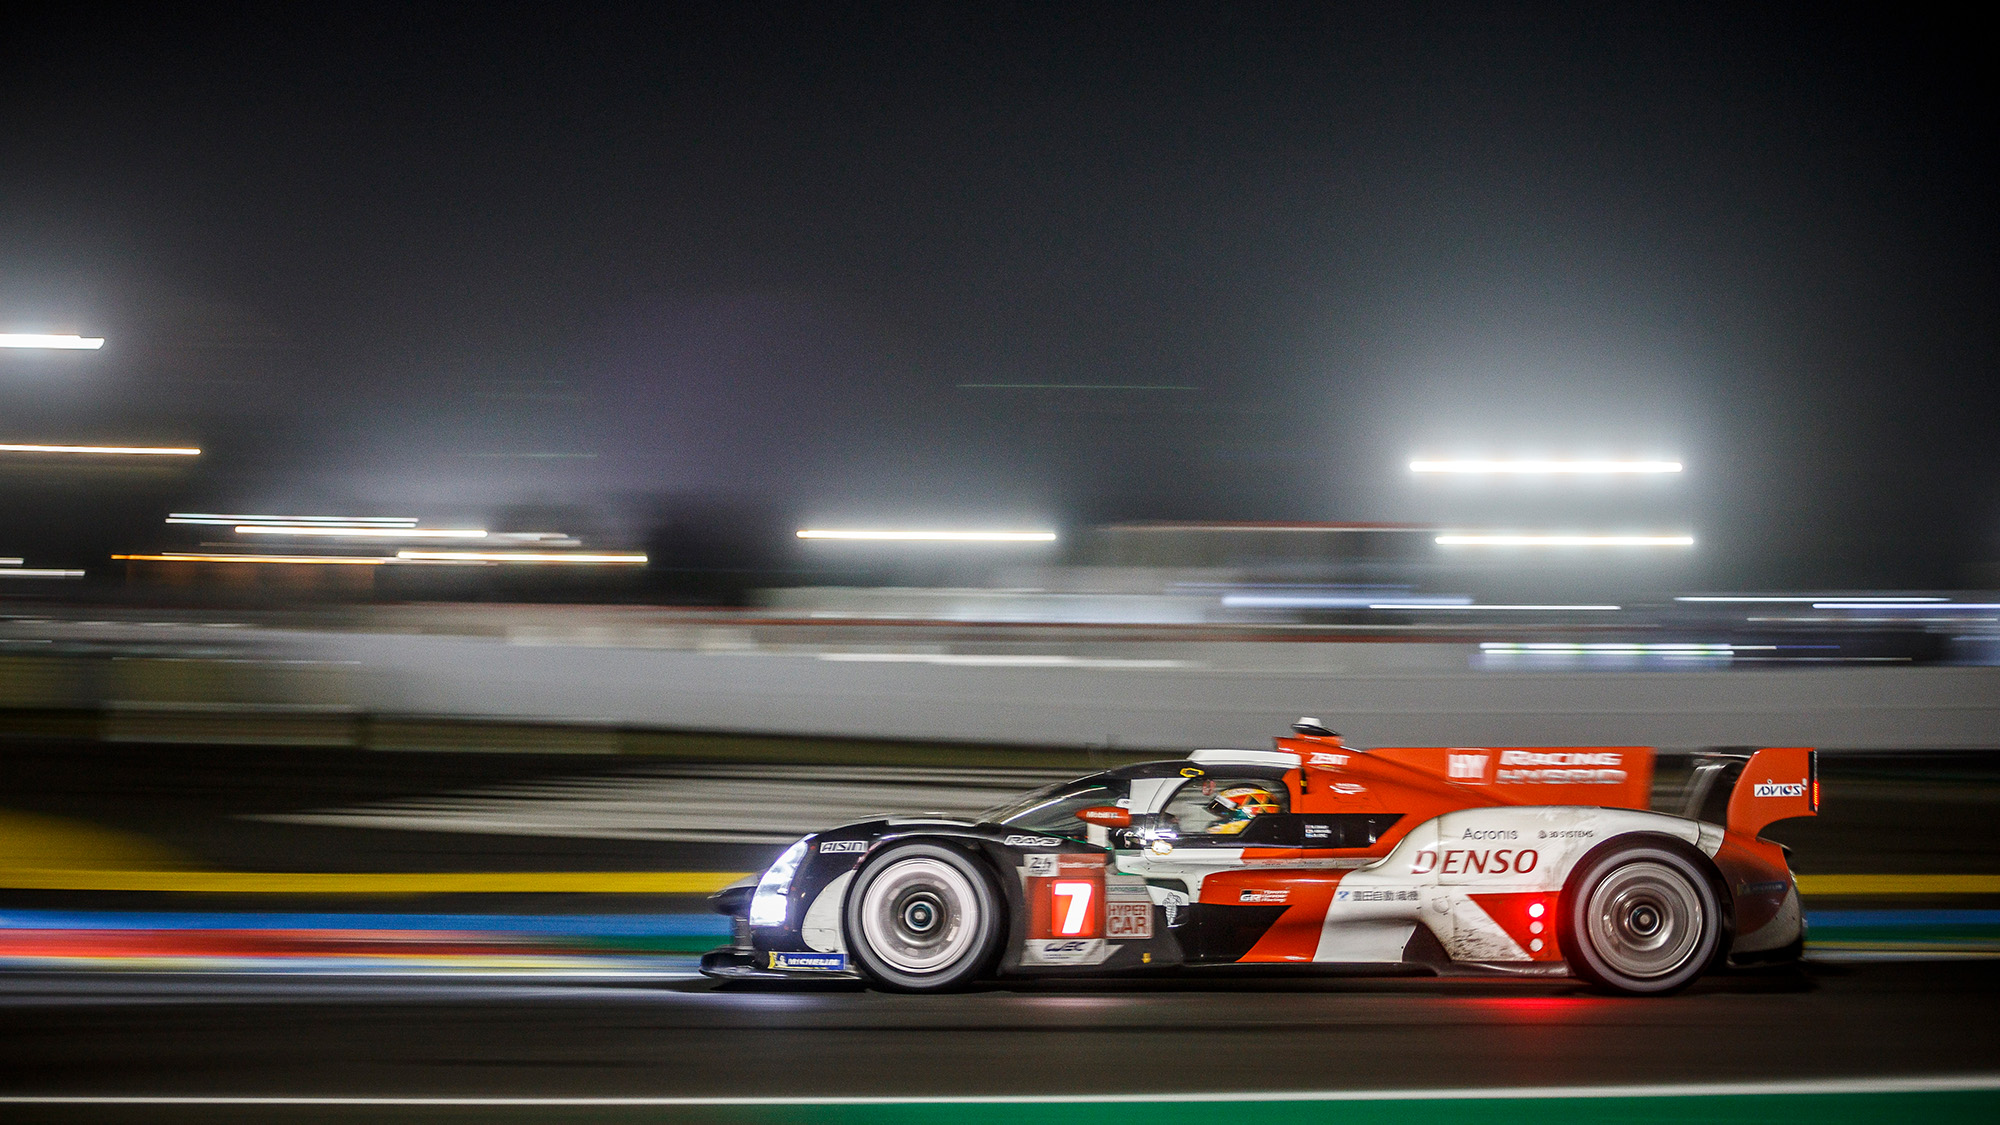 No7 Toyota during 2021 Le Mans 24 Hours